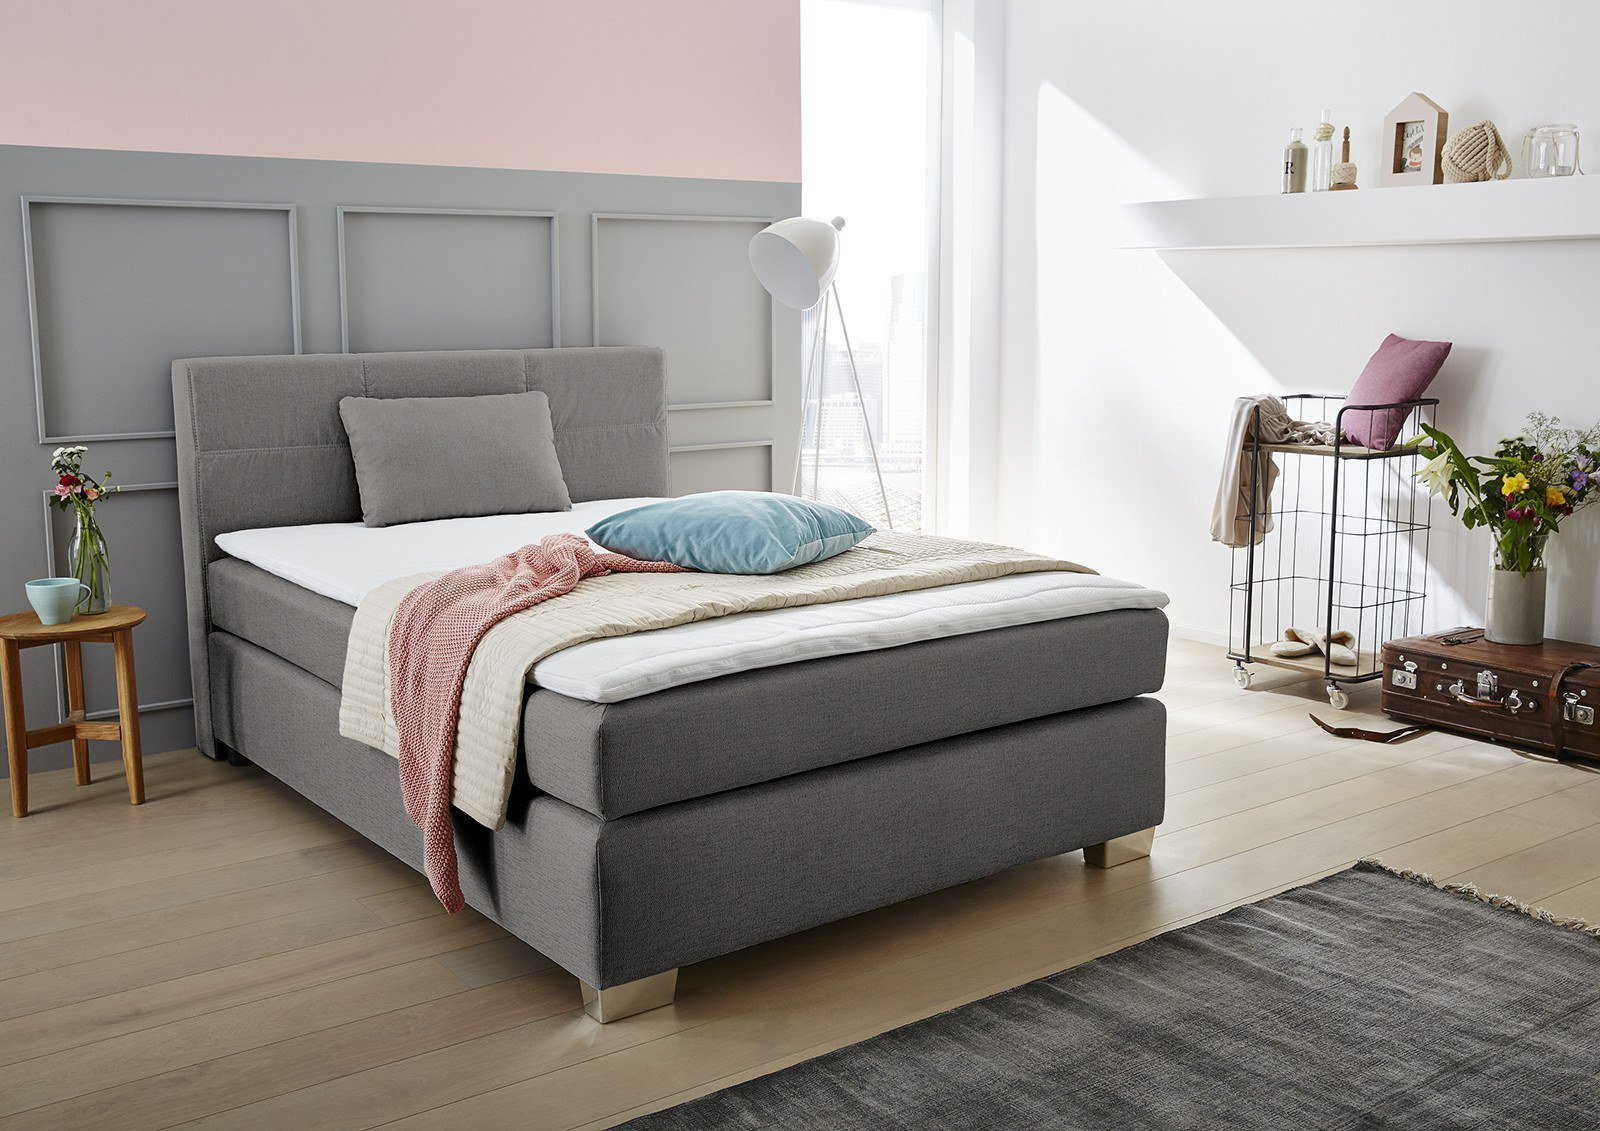 jockenh fer boxspringbett modell evita ruthie in grau inklusive topper und zierkissen m bel. Black Bedroom Furniture Sets. Home Design Ideas